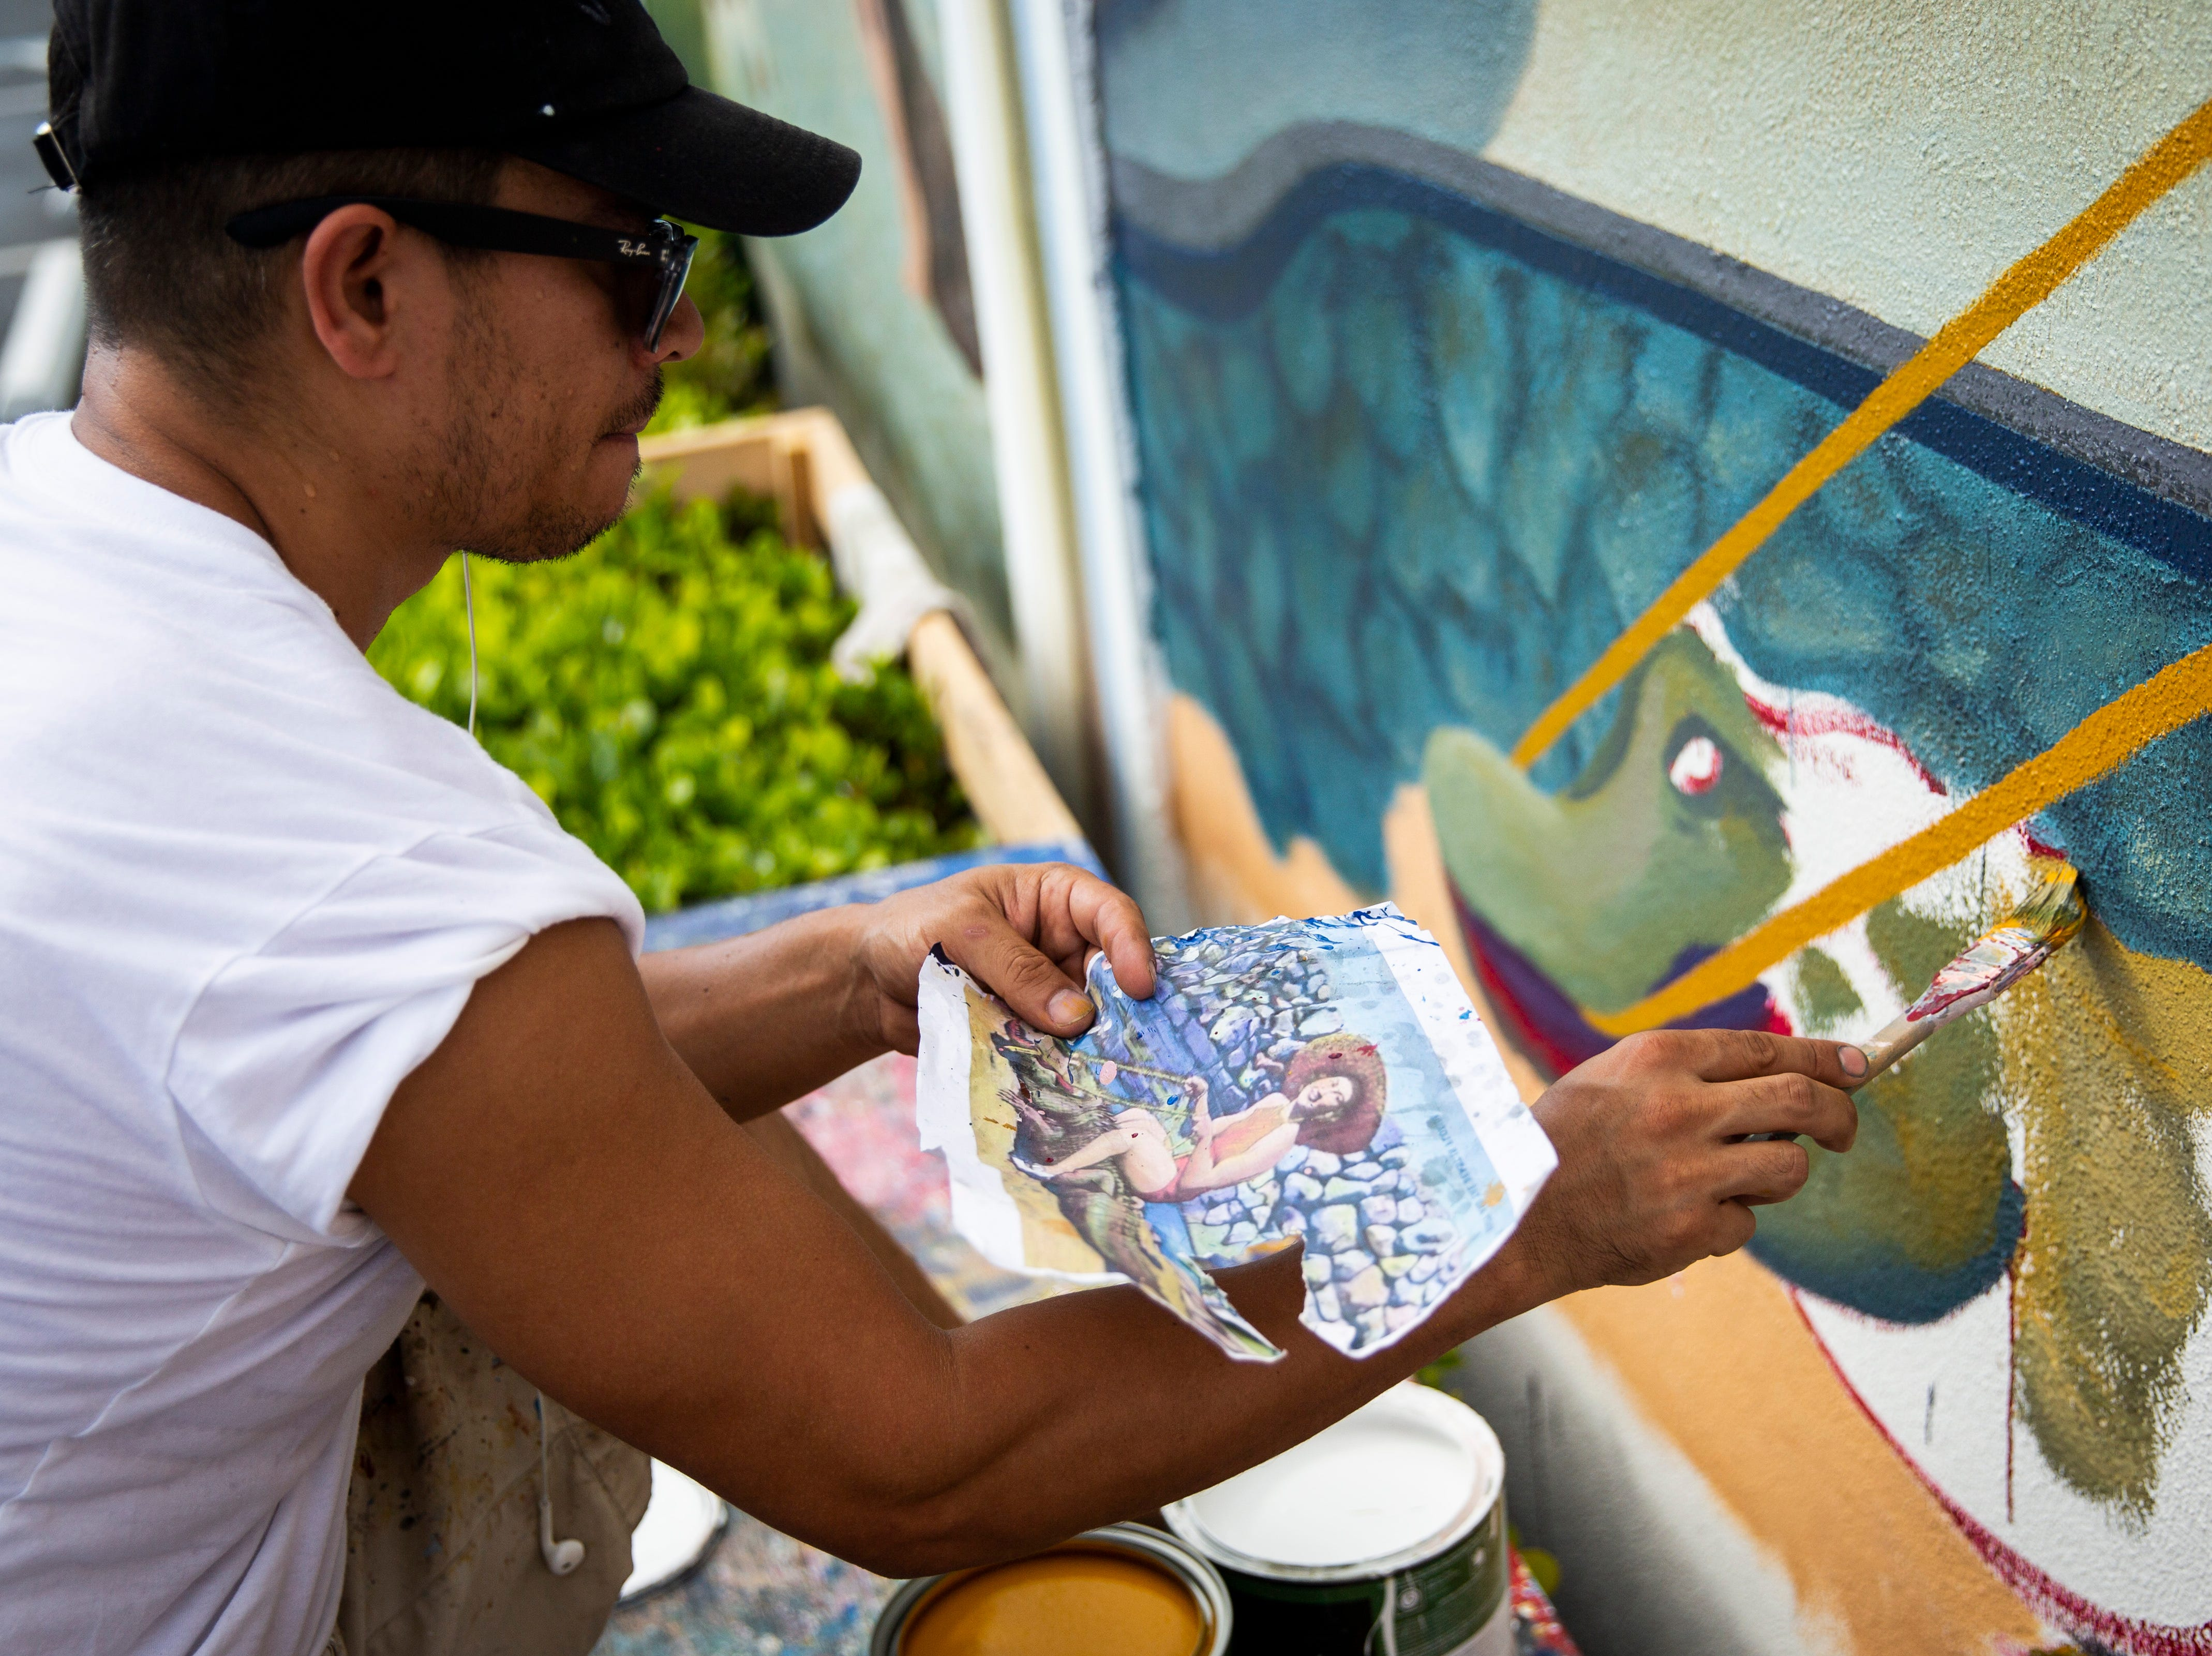 Naples artist Juan Diaz uses a printout of a vintage postcard as a reference while working on a mural on Friday, November 23, 2018, at the corner of U.S. 41 South and First Avenue South in Naples.